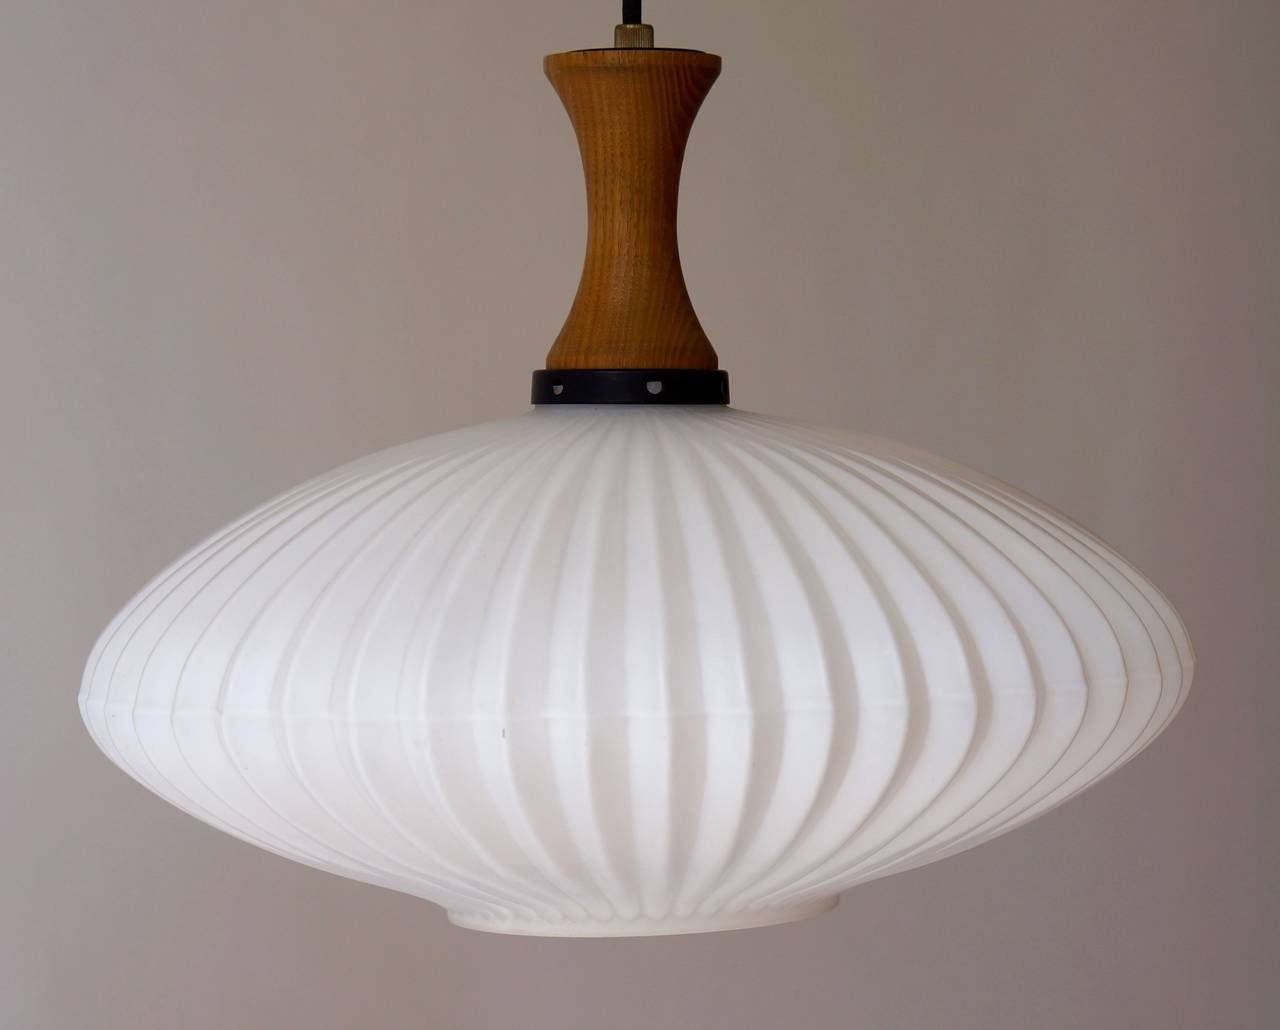 20th Century Mid-Century Danish Glass and Wood Chandelier or Pendant Light For Sale